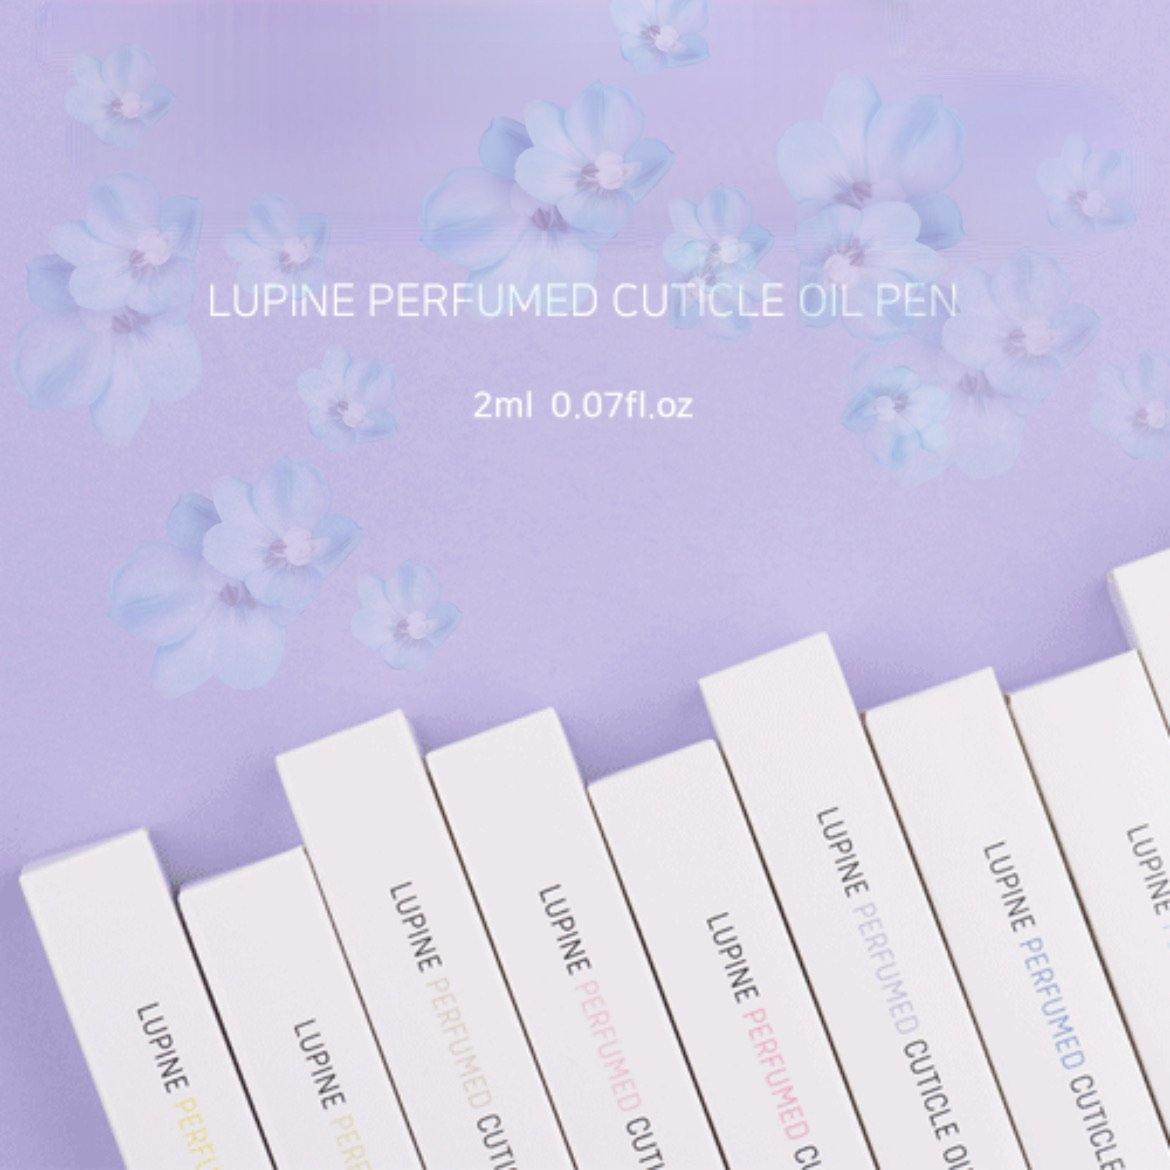 Lupine- Perfumed cuticle oil pen - Black Berry